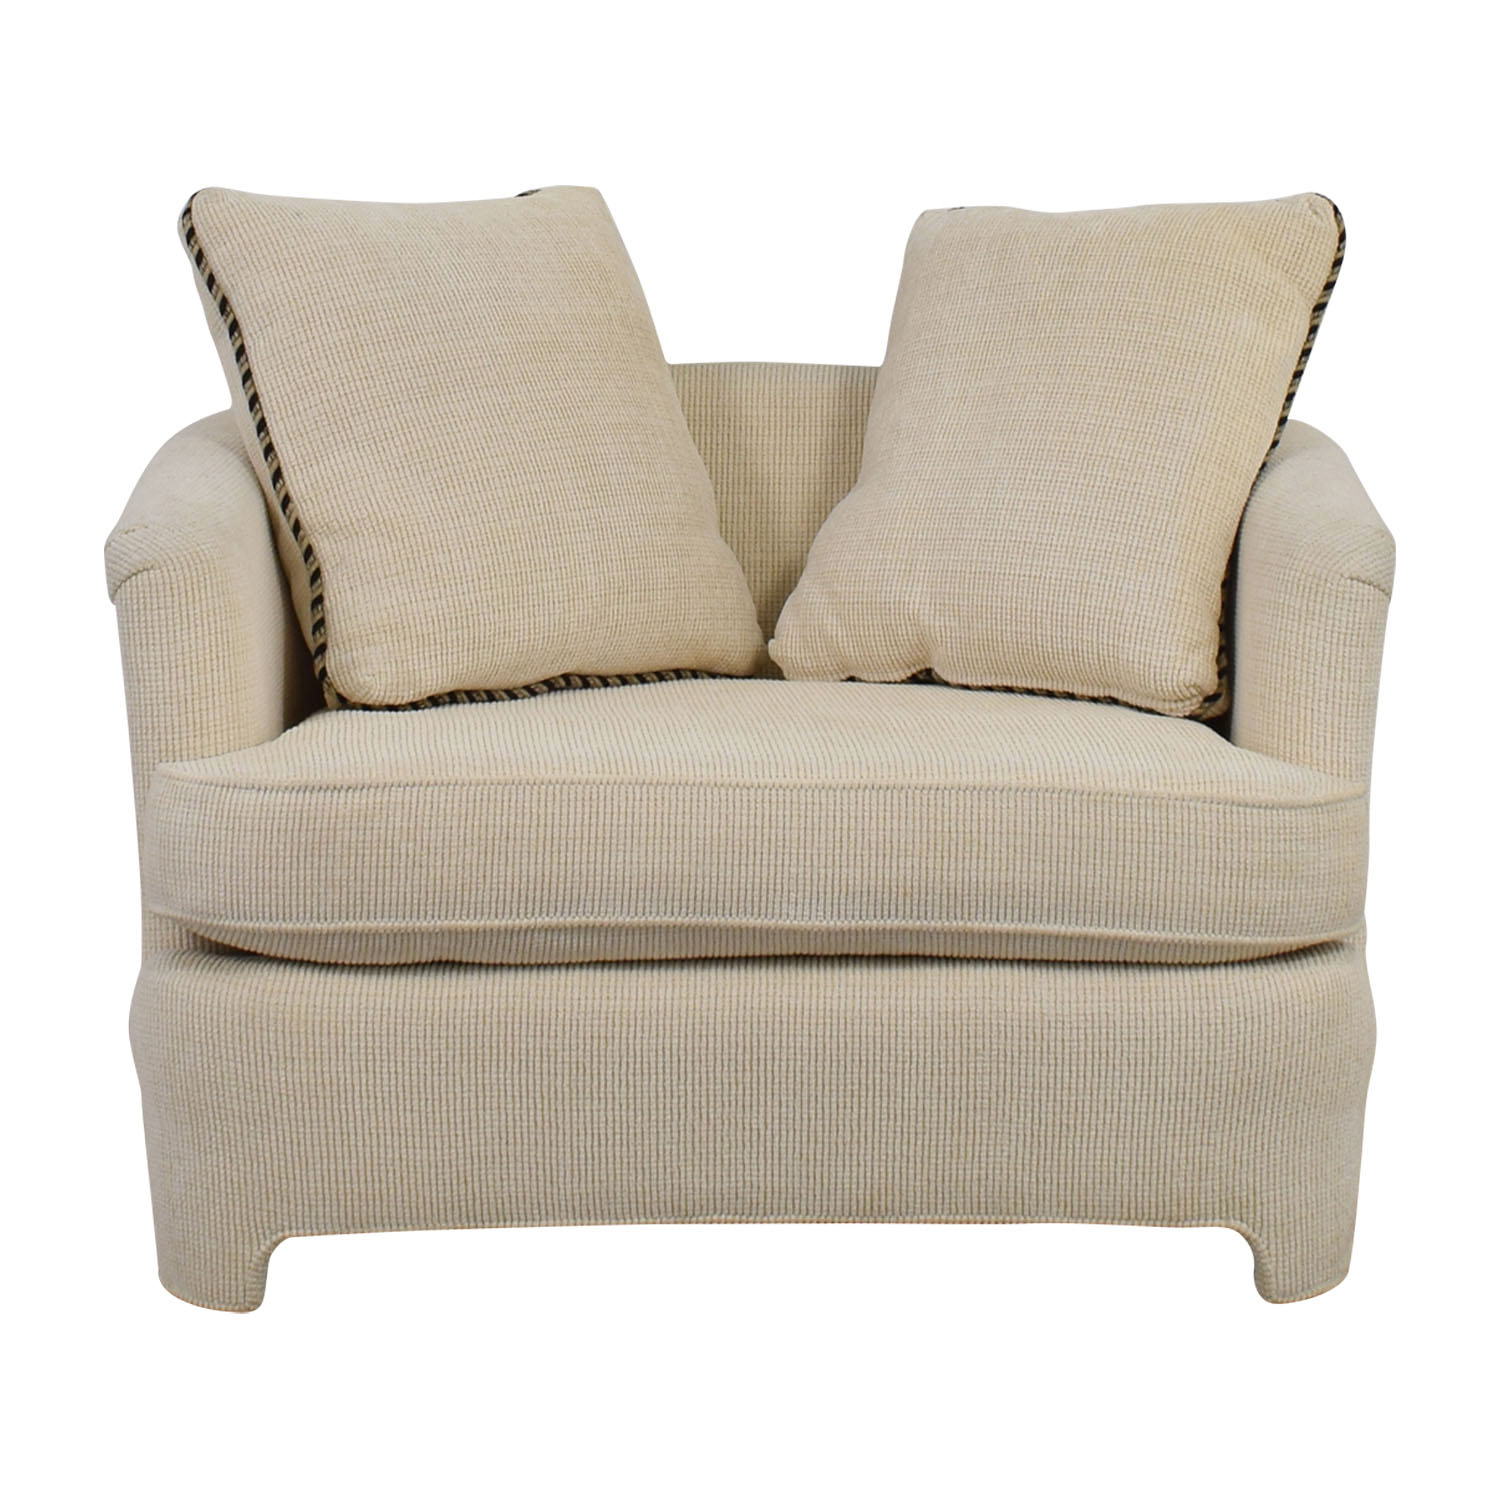 Off White Accent Chair with Pillows coupon